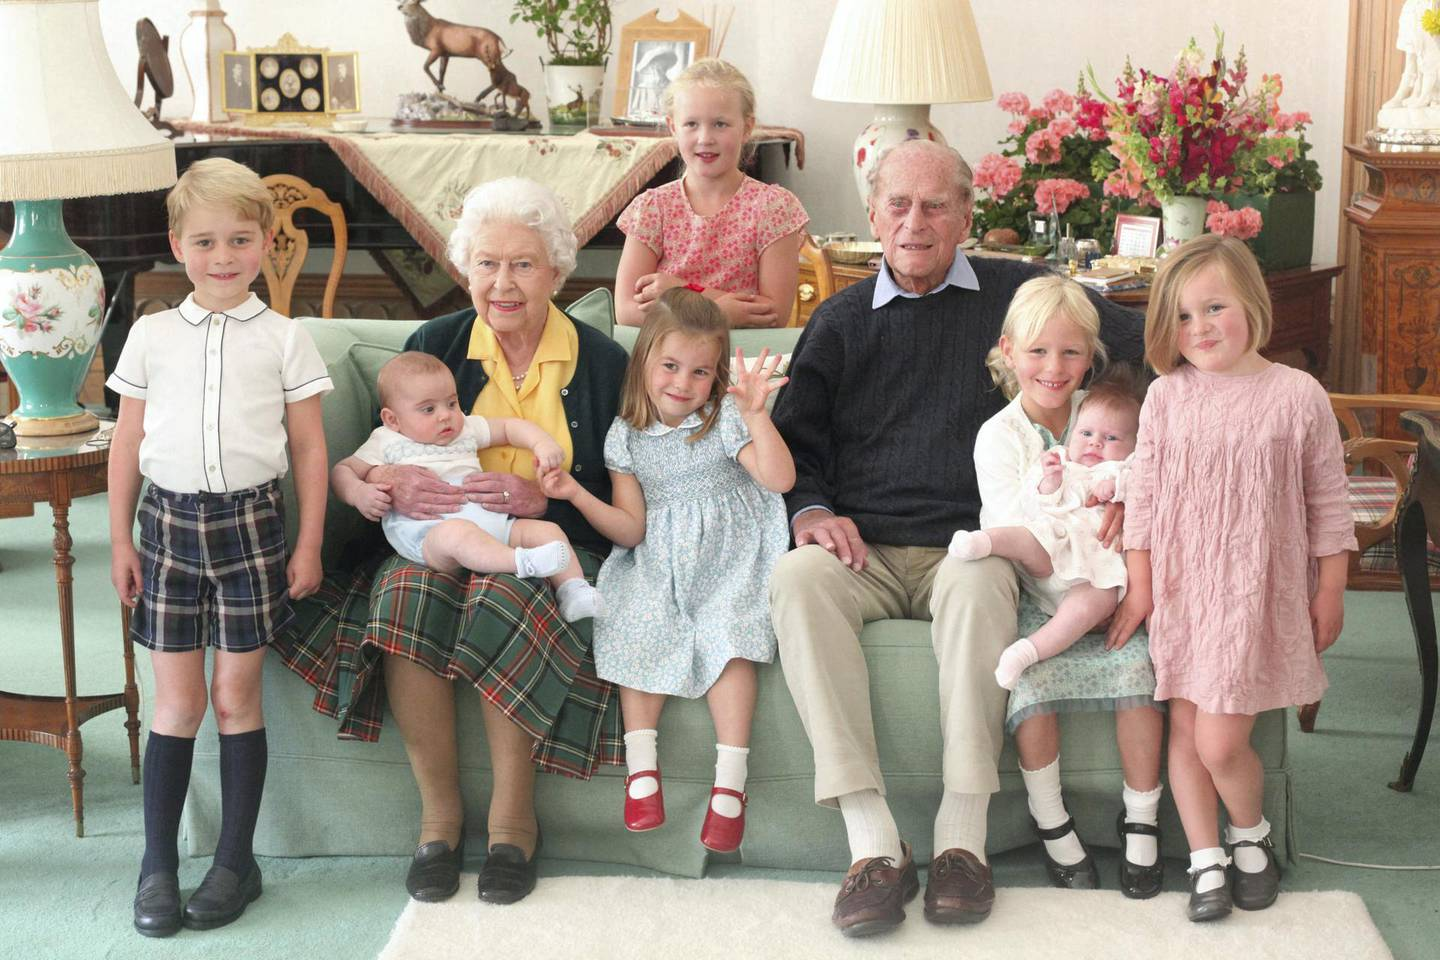 """An undated handout picture released by Kensington Palace on April 14, 2021 shows Britain's Queen Elizabeth II and  Britain's Prince Philip, Duke of Edinburgh with their great grandchildren. Pictured (L-R) are Britain's Prince George of Cambridge, Britain's Prince Louis of Cambridge being held by Britain's Queen Elizabeth II, Savannah Phillips (standing at rear), Britain's Princess Charlotte of Cambridge, Britain's Prince Philip, Duke of Edinburgh, Isla Phillips holding Lena Tindall, and Mia Tindall. (Photo by THE DUCHESS OF CAMBRIDGE / KENSINGTON PALACE / AFP) / RESTRICTED TO EDITORIAL USE - MANDATORY CREDIT """"AFP PHOTO / KENSINGTON PALACE / DUCHESS OF CAMBRIDGE"""" - NO MARKETING - NO ADVERTISING CAMPAIGNS  - NO COMMERCIAL USE - RESTRICTED TO SUBSCRIPTION USE - STRICTLY NO SALES - DISTRIBUTED AS A SERVICE TO CLIENTS - NOT FOR USE AFTER DECEMBER 31, 2021. /"""